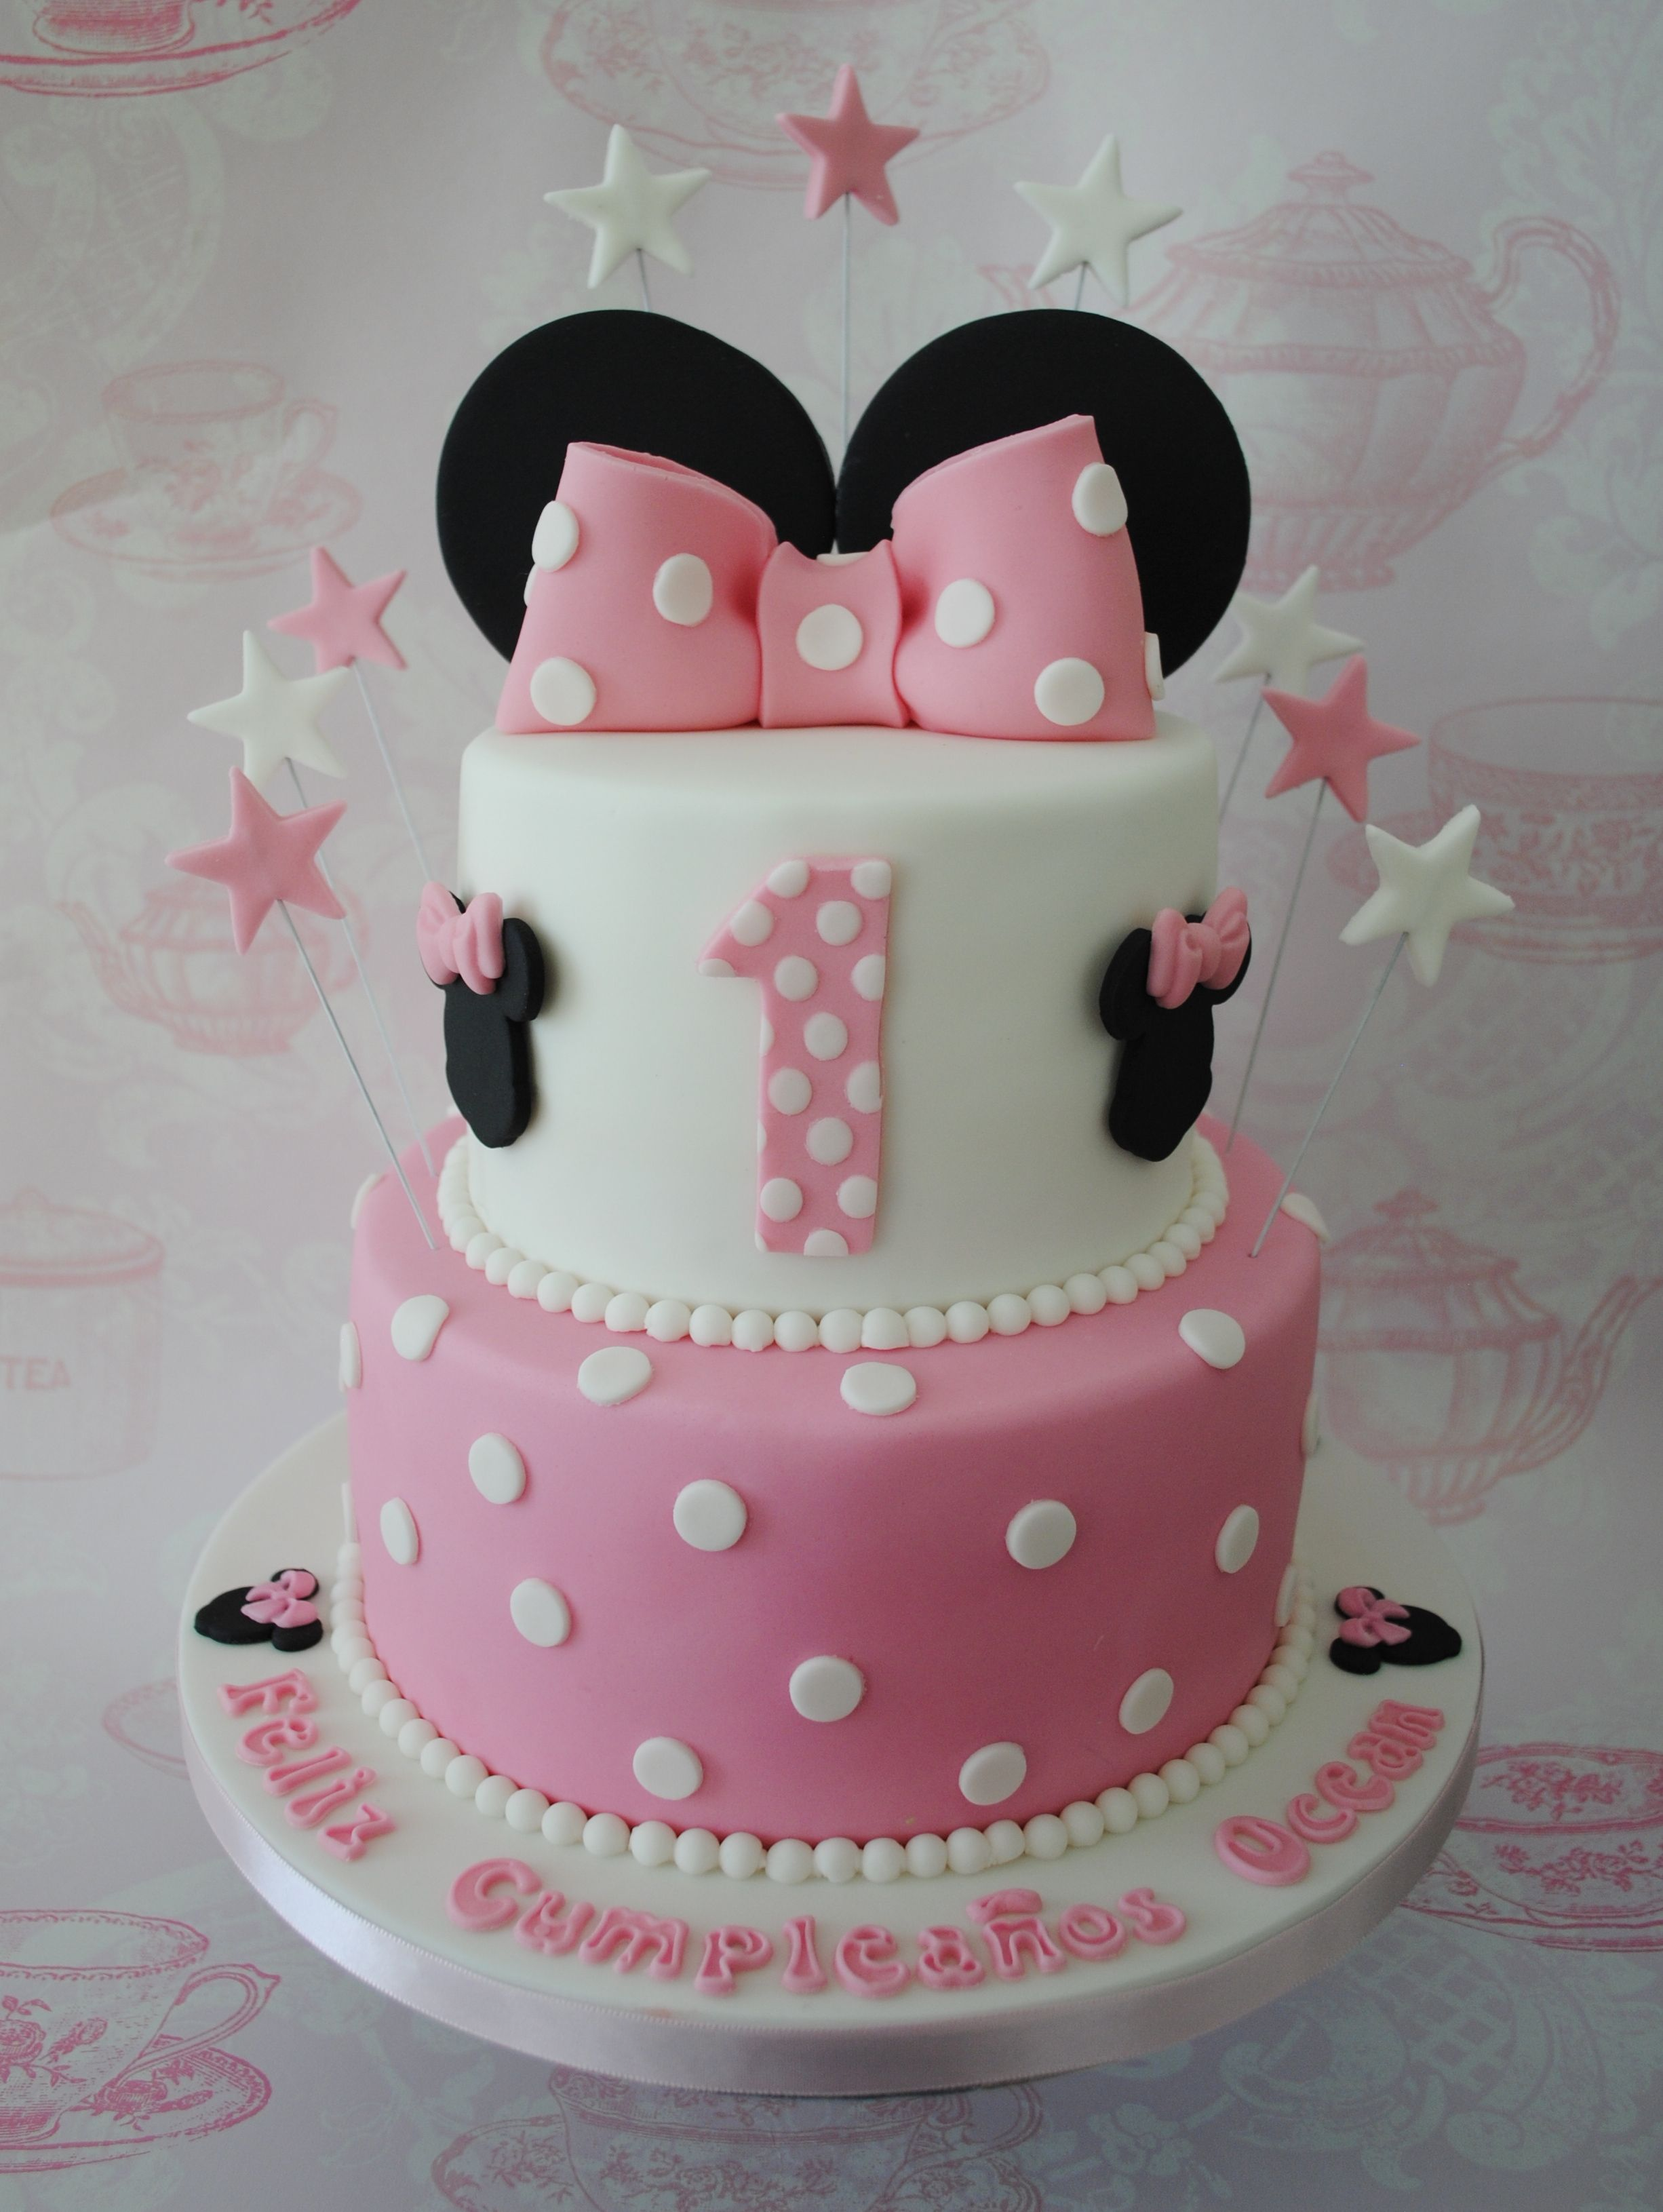 2 tiered Minnie mouse birthday cake Minnie mouse birthday cakes